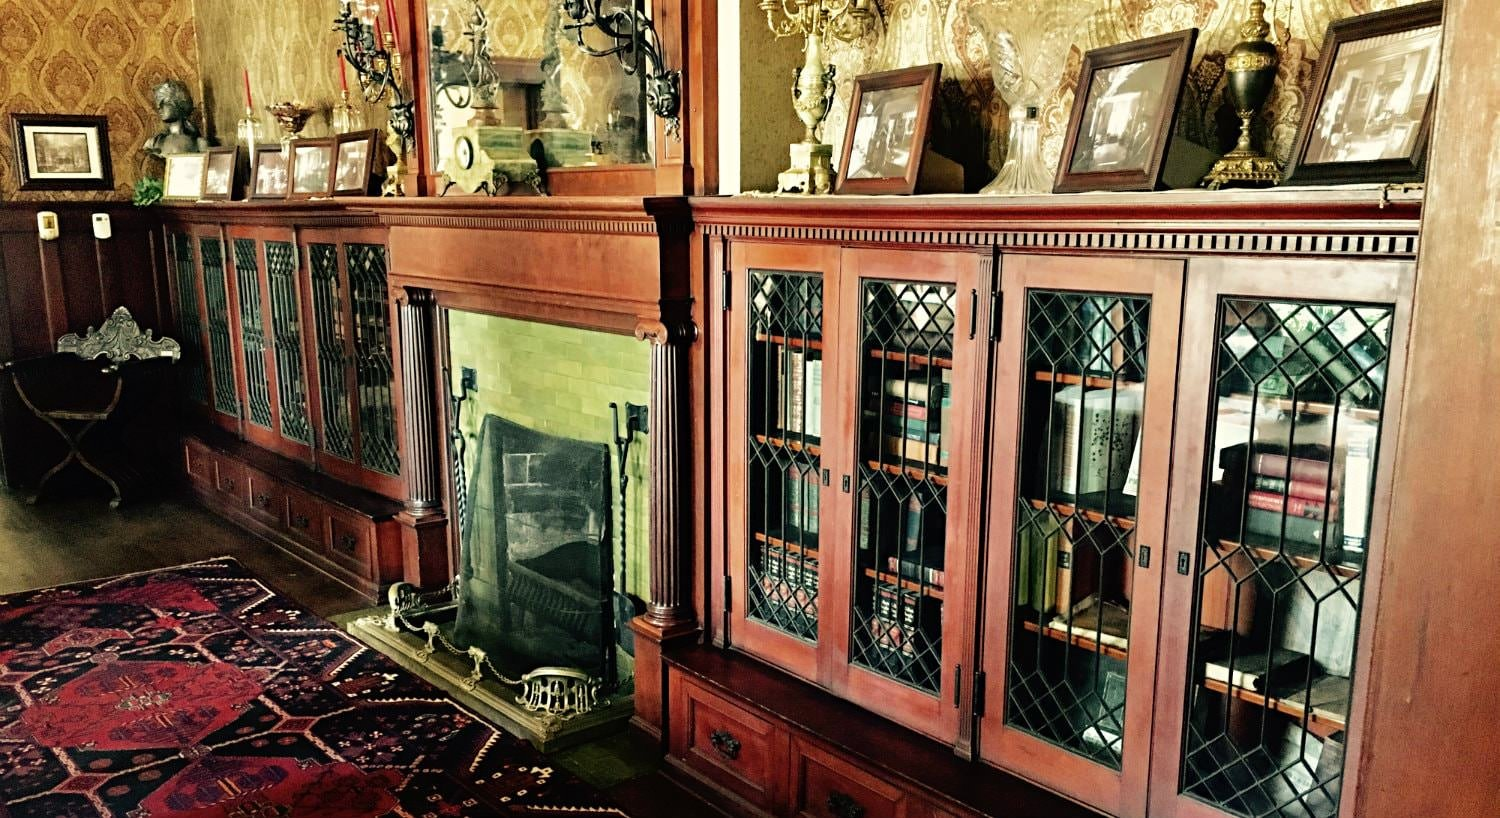 Fireplace flanked by mantel-high bookcases with leaded glass doors and topped with framed photos